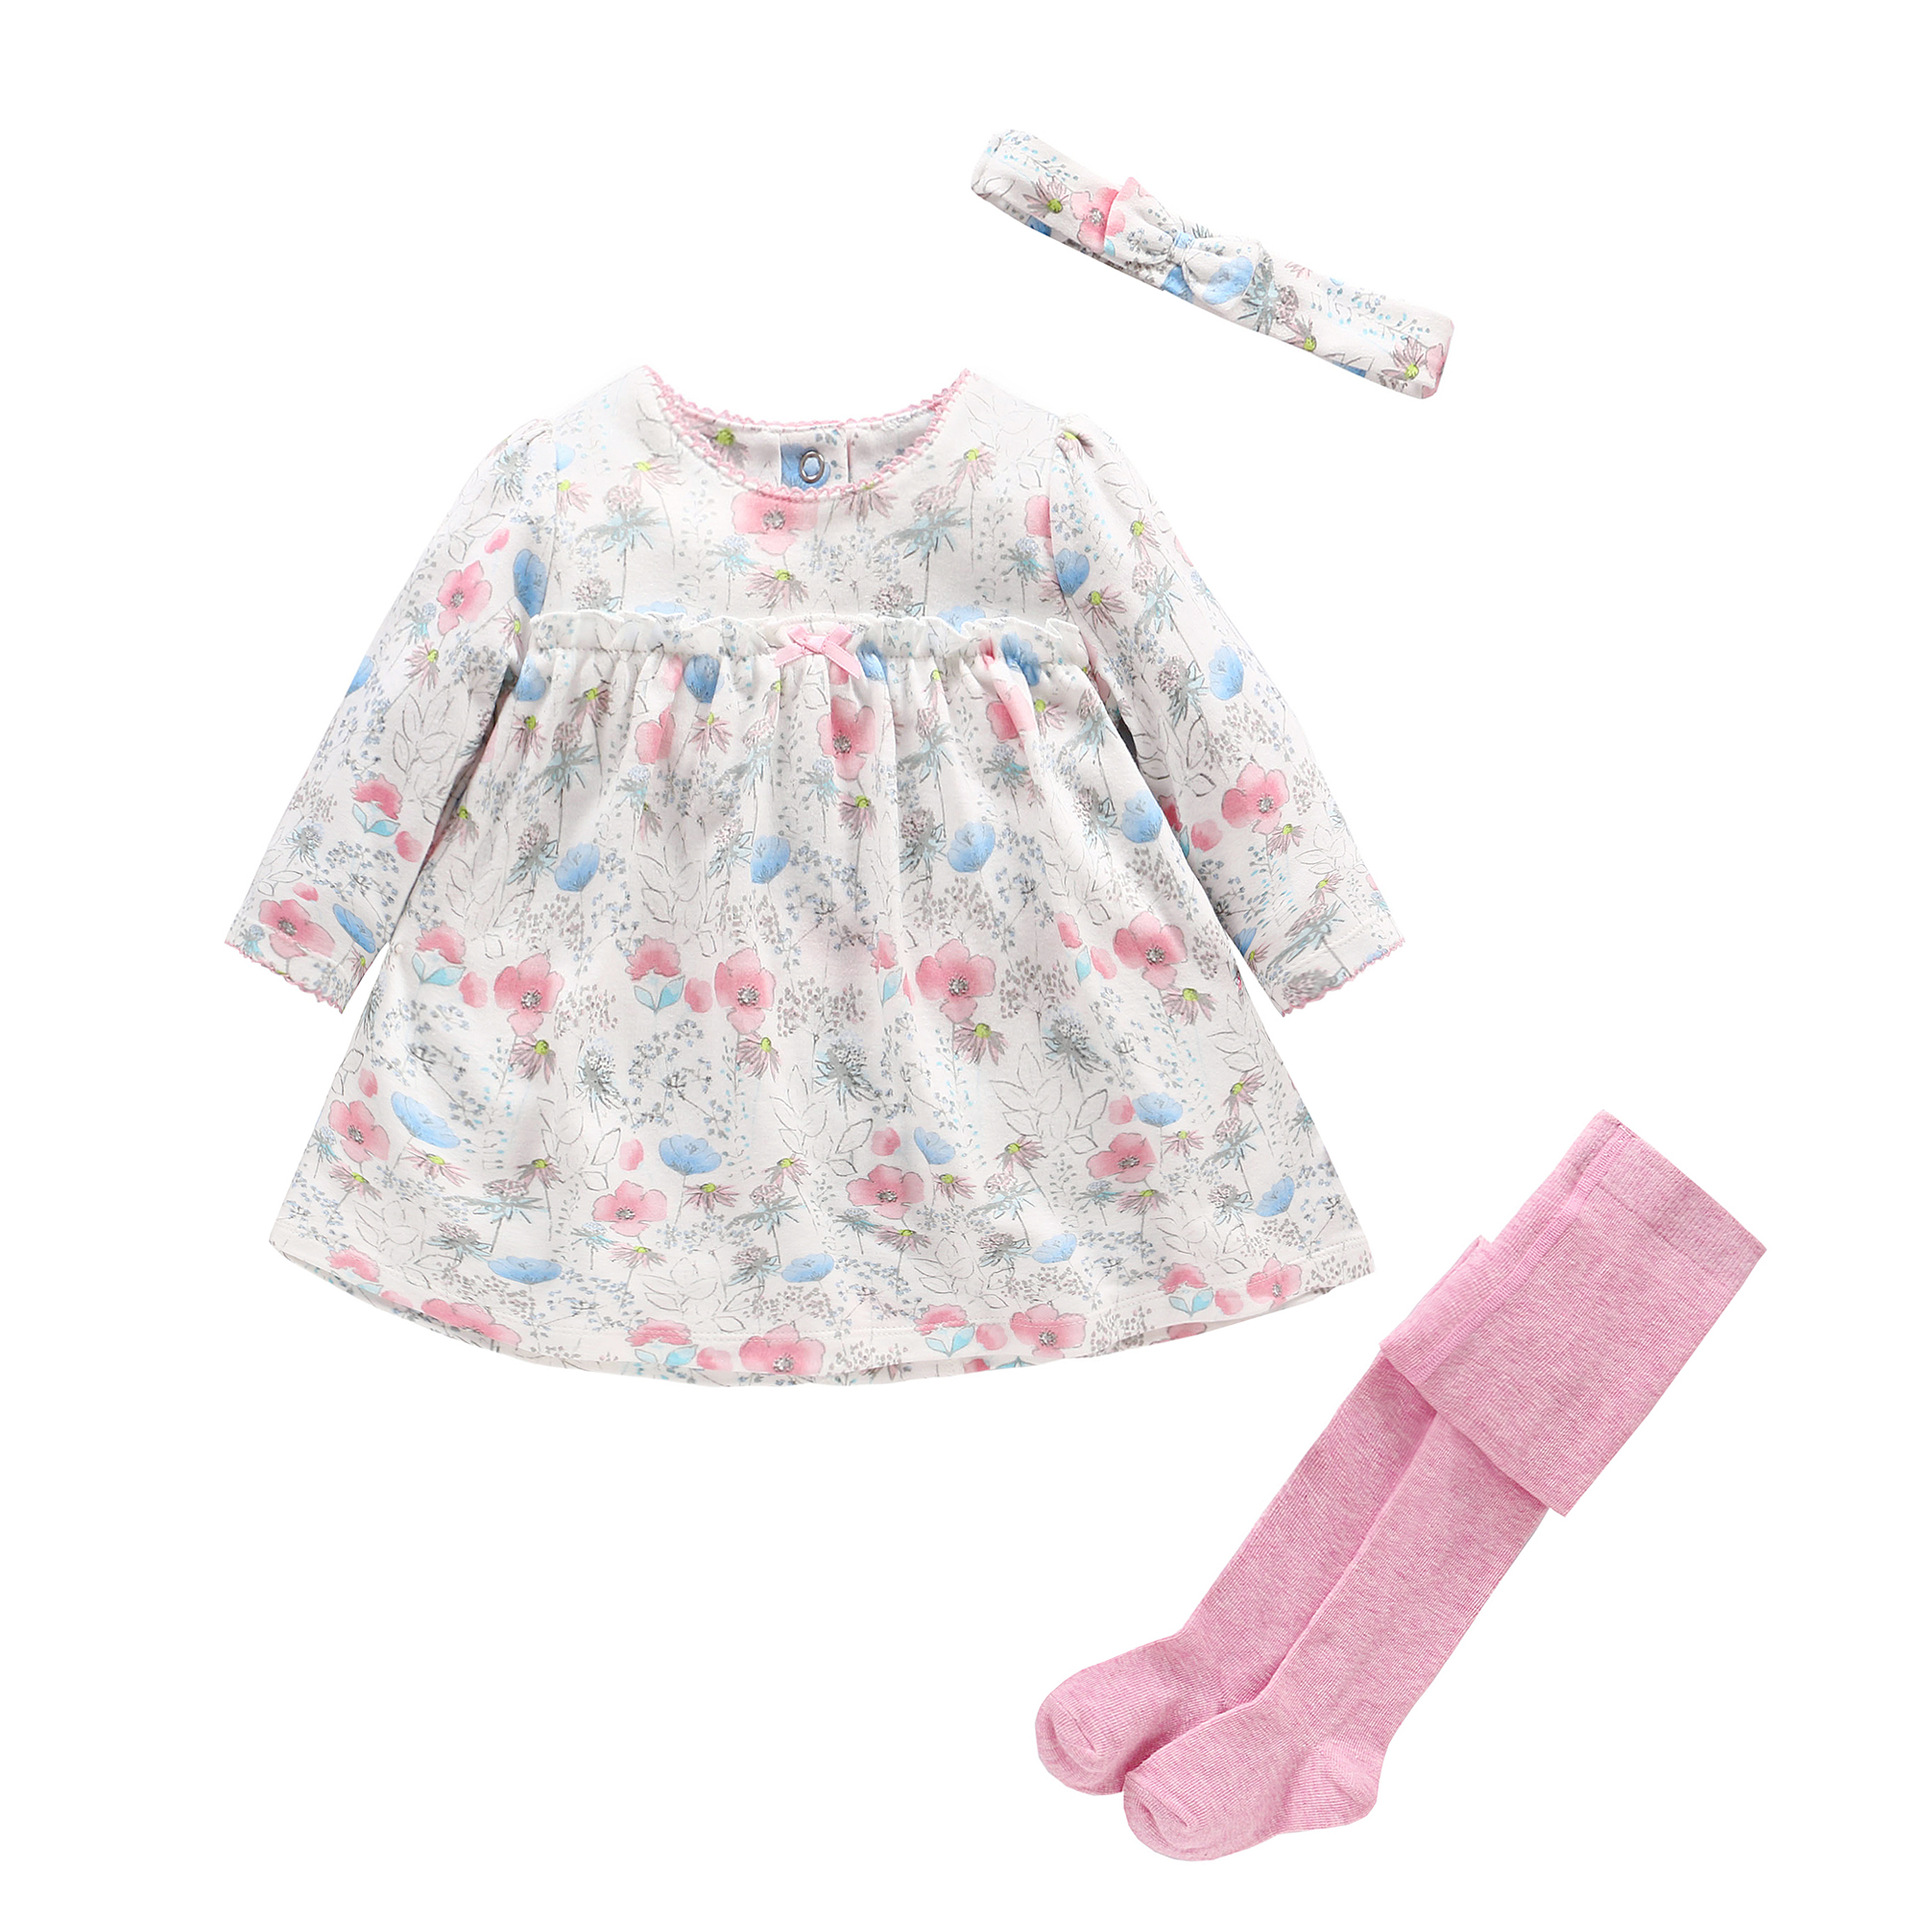 Baby Girl Clothes Set Newborn Girl Baby Dress+ Headband ...